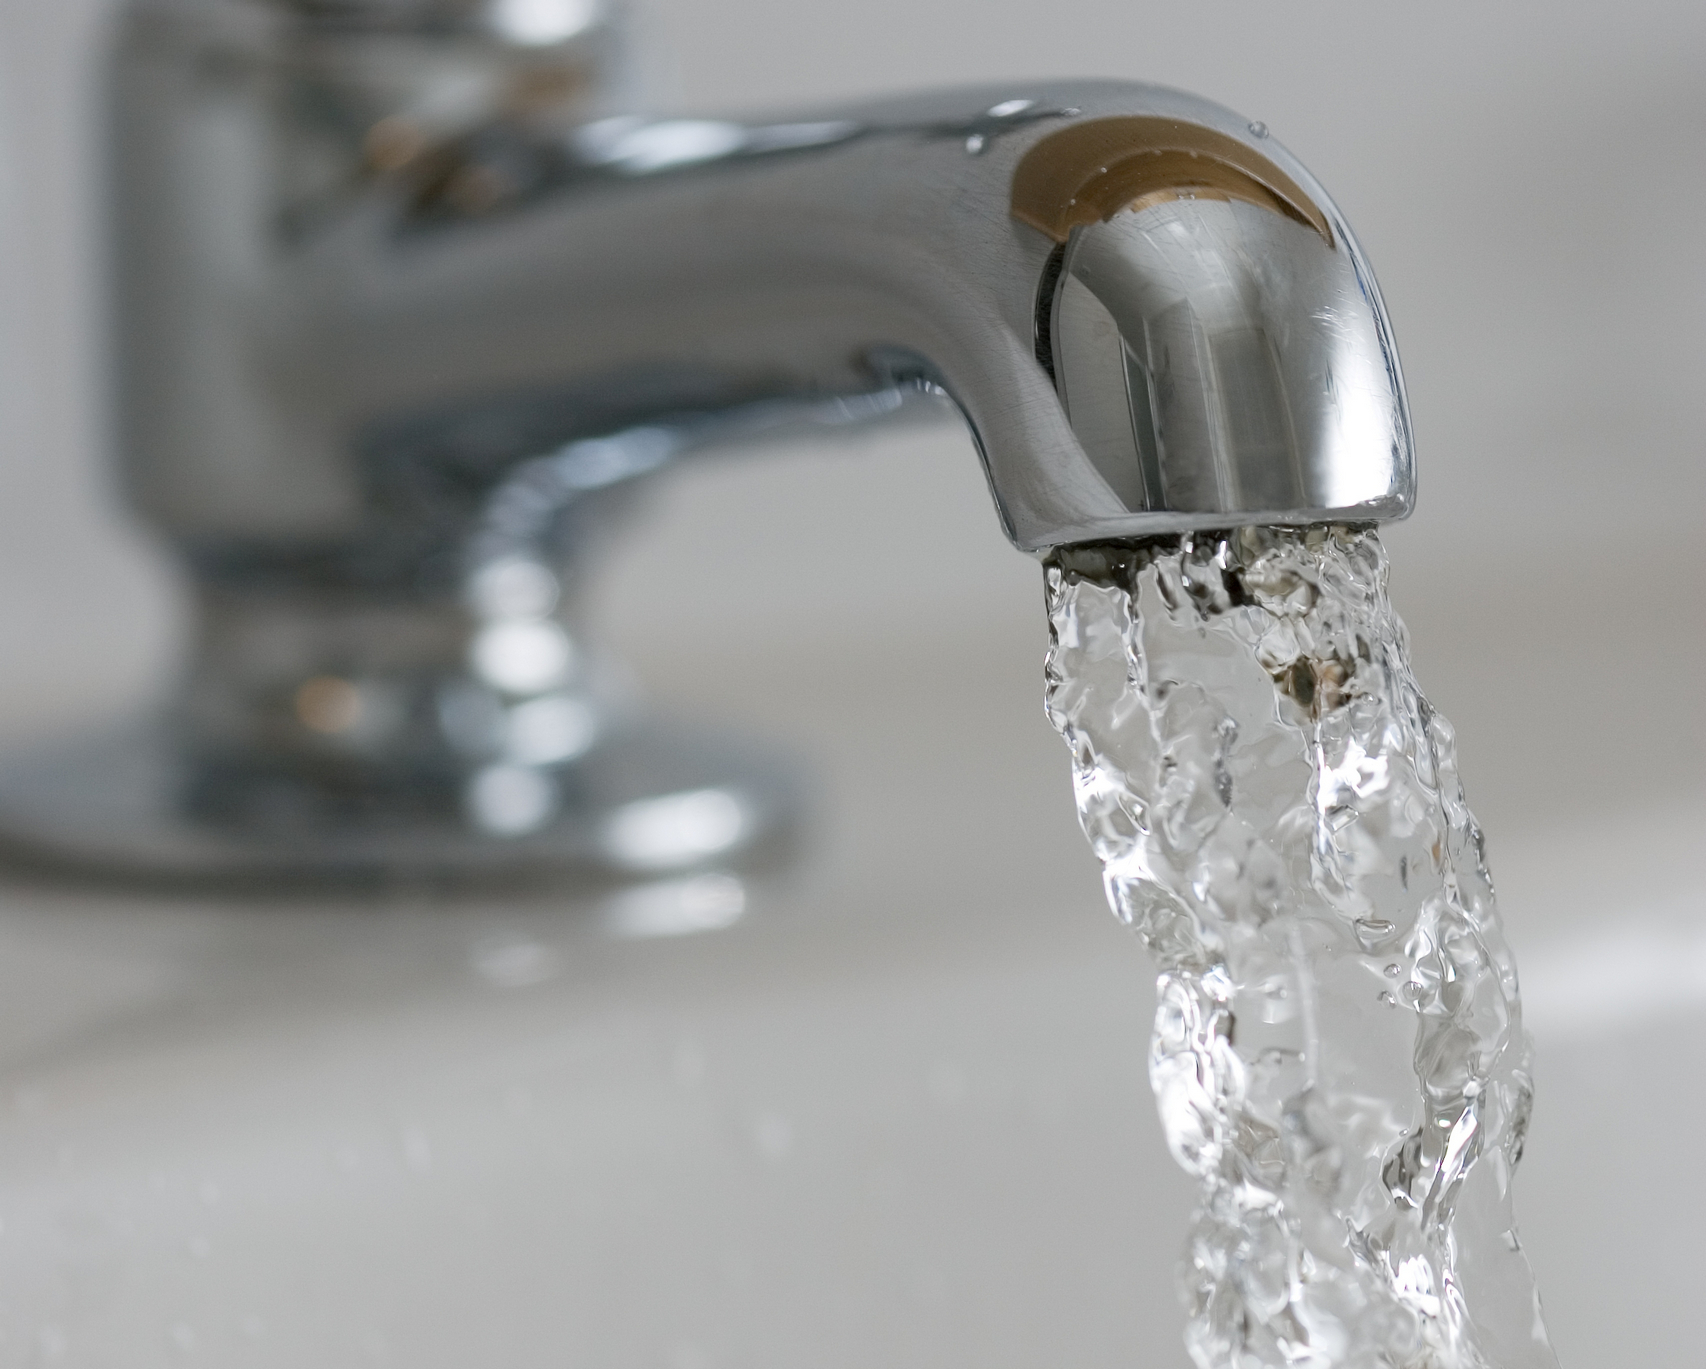 Water flows from a domestic tap, United Kingdom